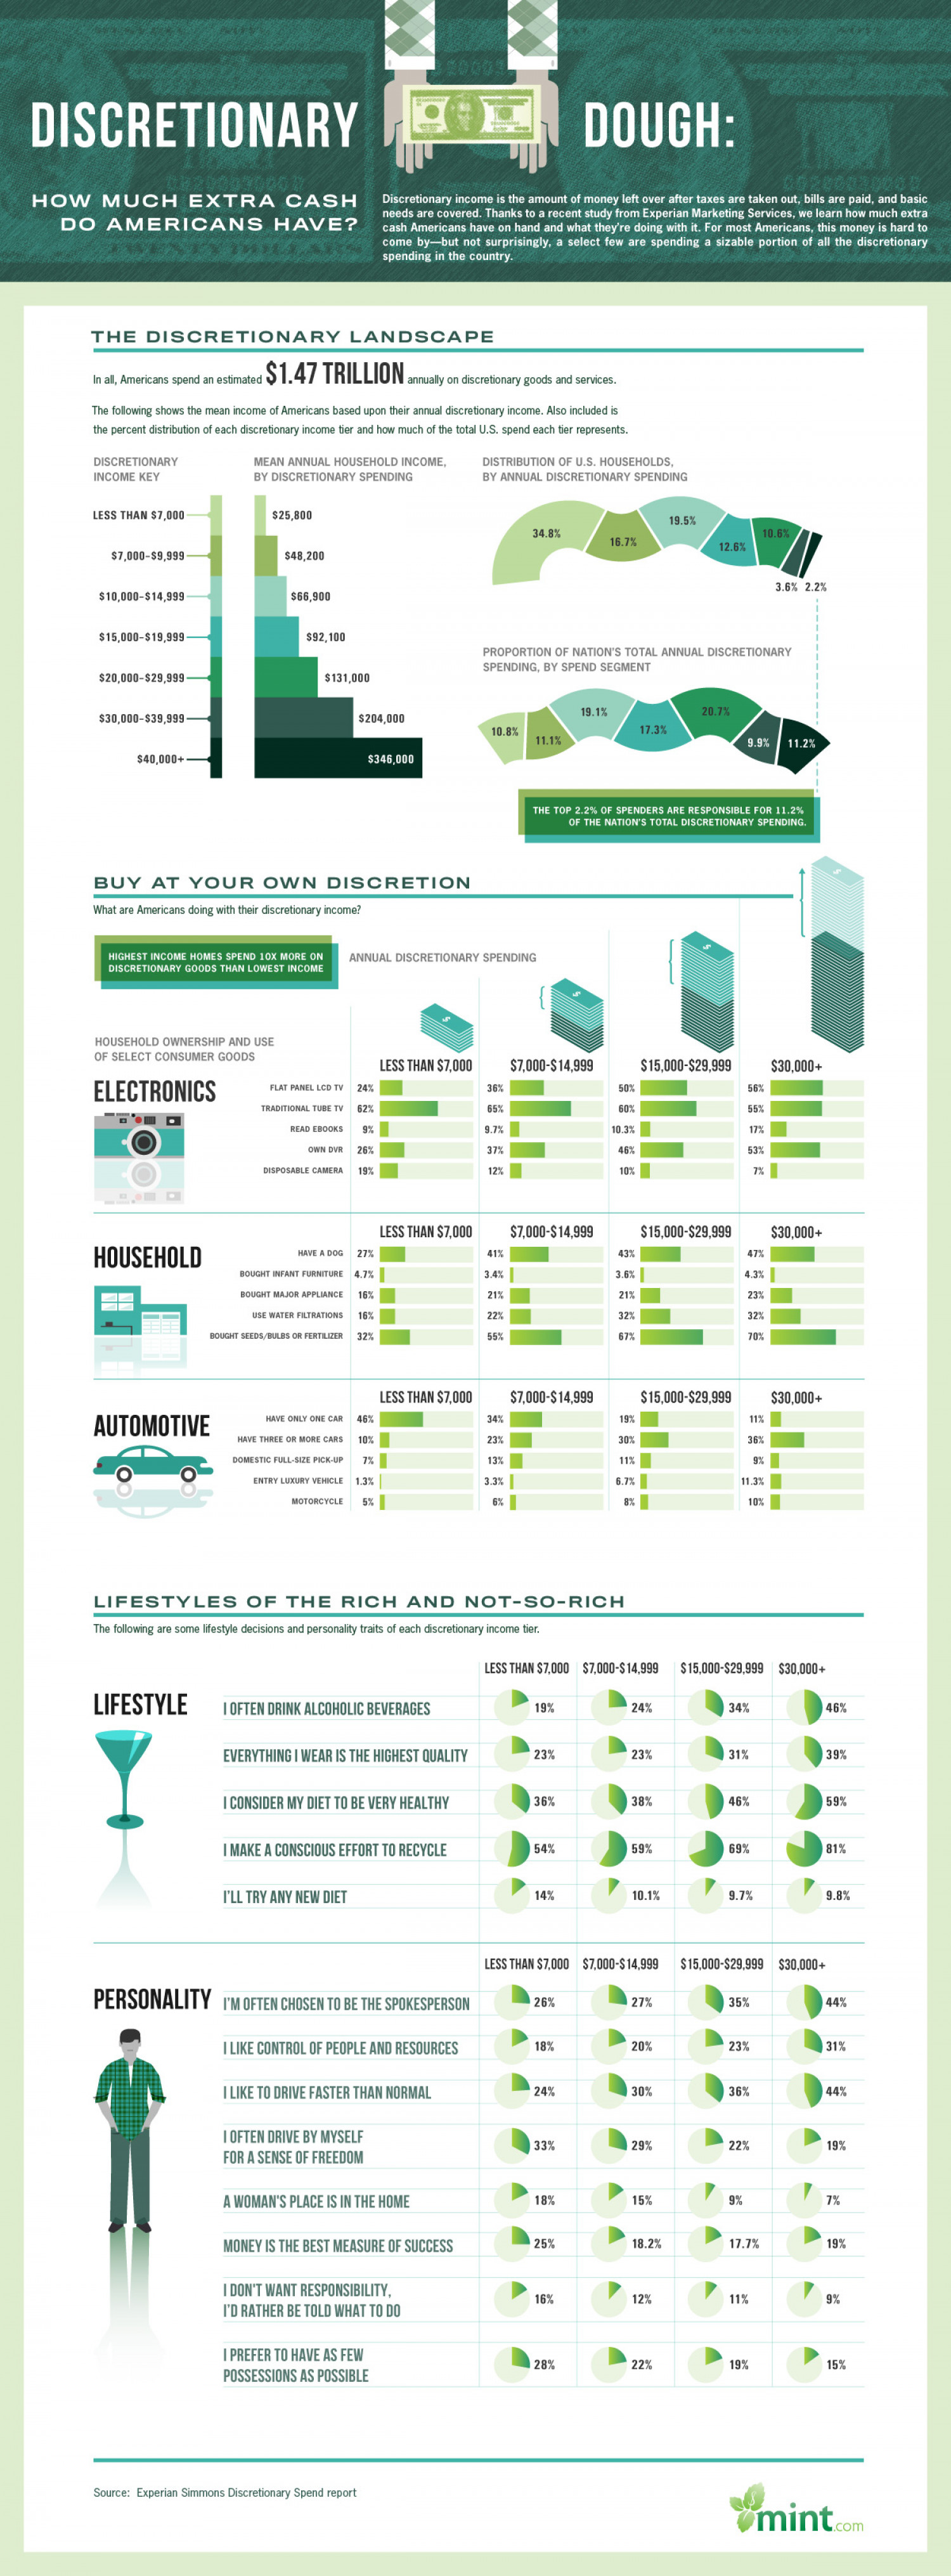 Discretionary Dough: How Much Extra Cash Do American's Have? Infographic